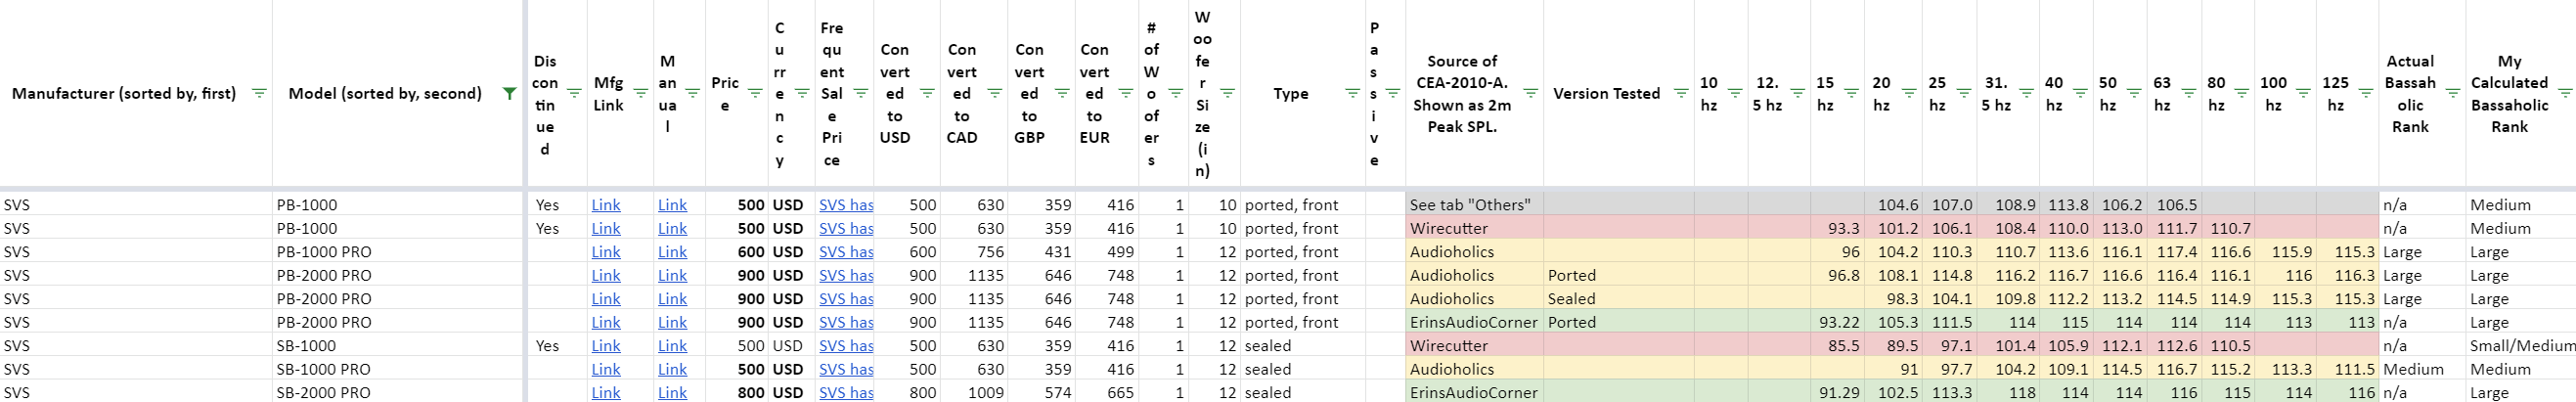 2021-04-20 11_05_14-Subwoofer Comparison (by @sweetchaos) - Google Sheets.png